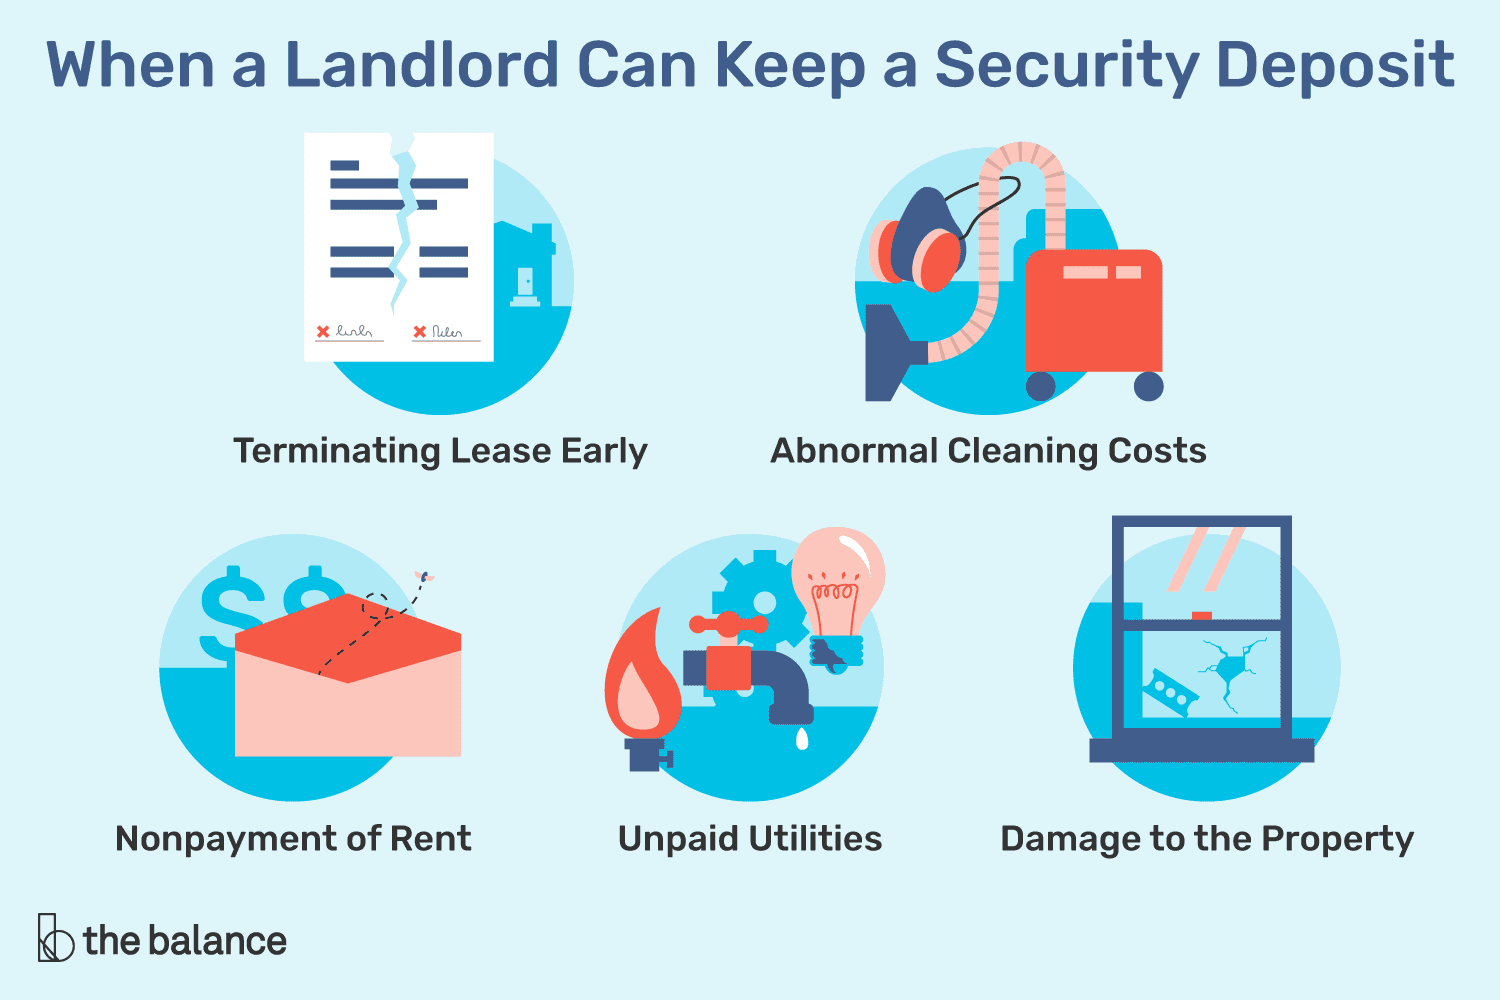 5 Reasons Not to Return a Tenant39s Security Deposit